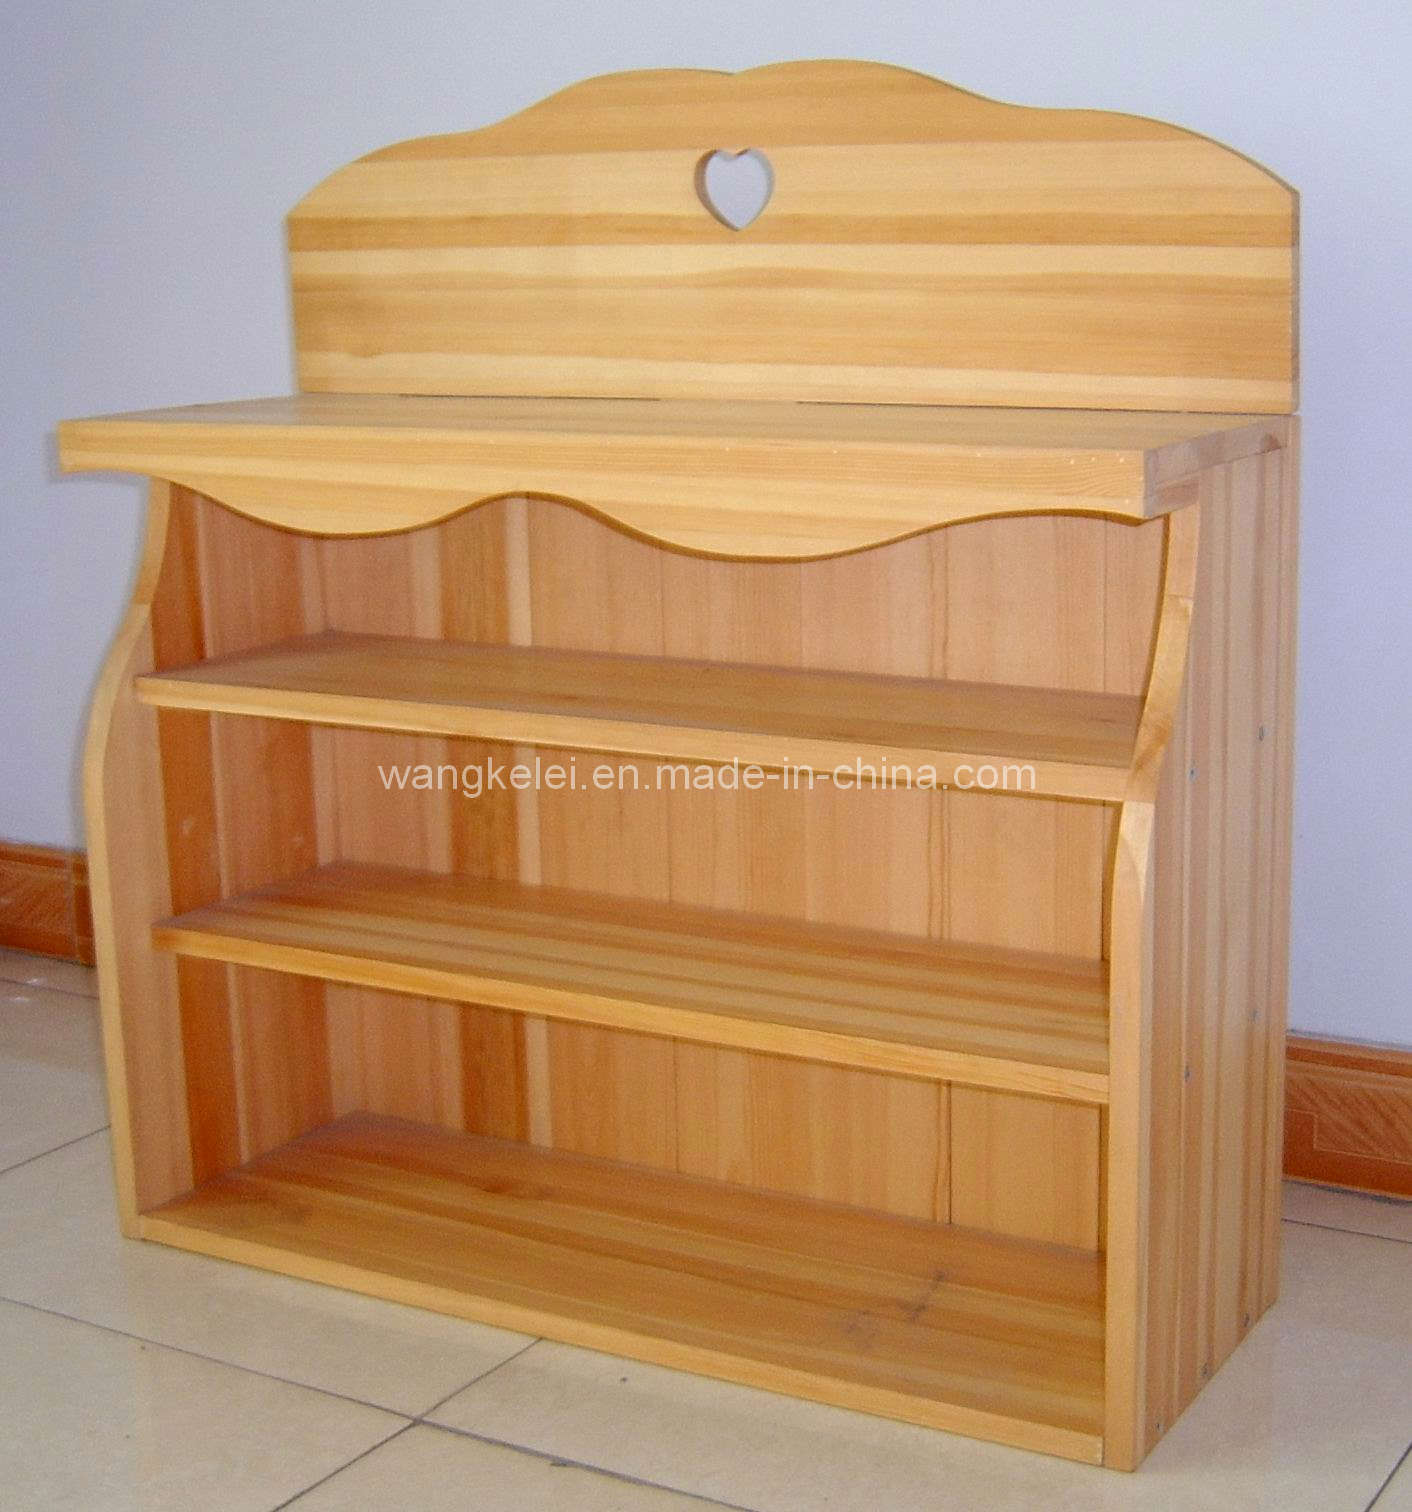 China wooden furniture cj 0225 china wooden furniture Wooden furniture pics